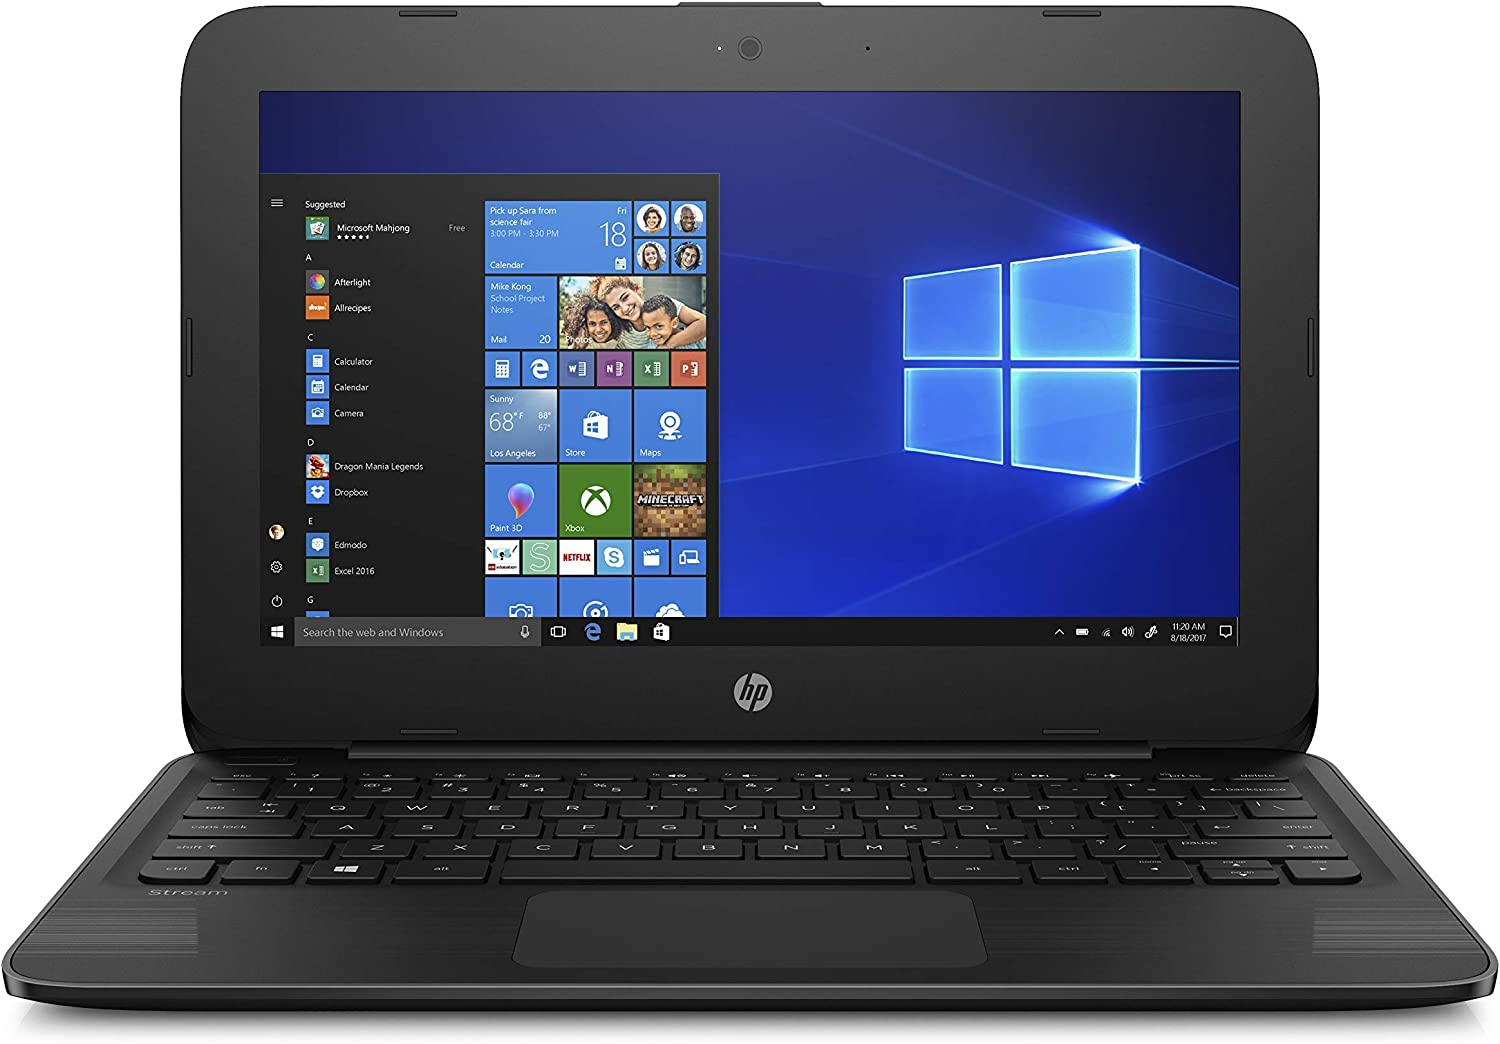 HP 11-ah117wm cheap chromebook